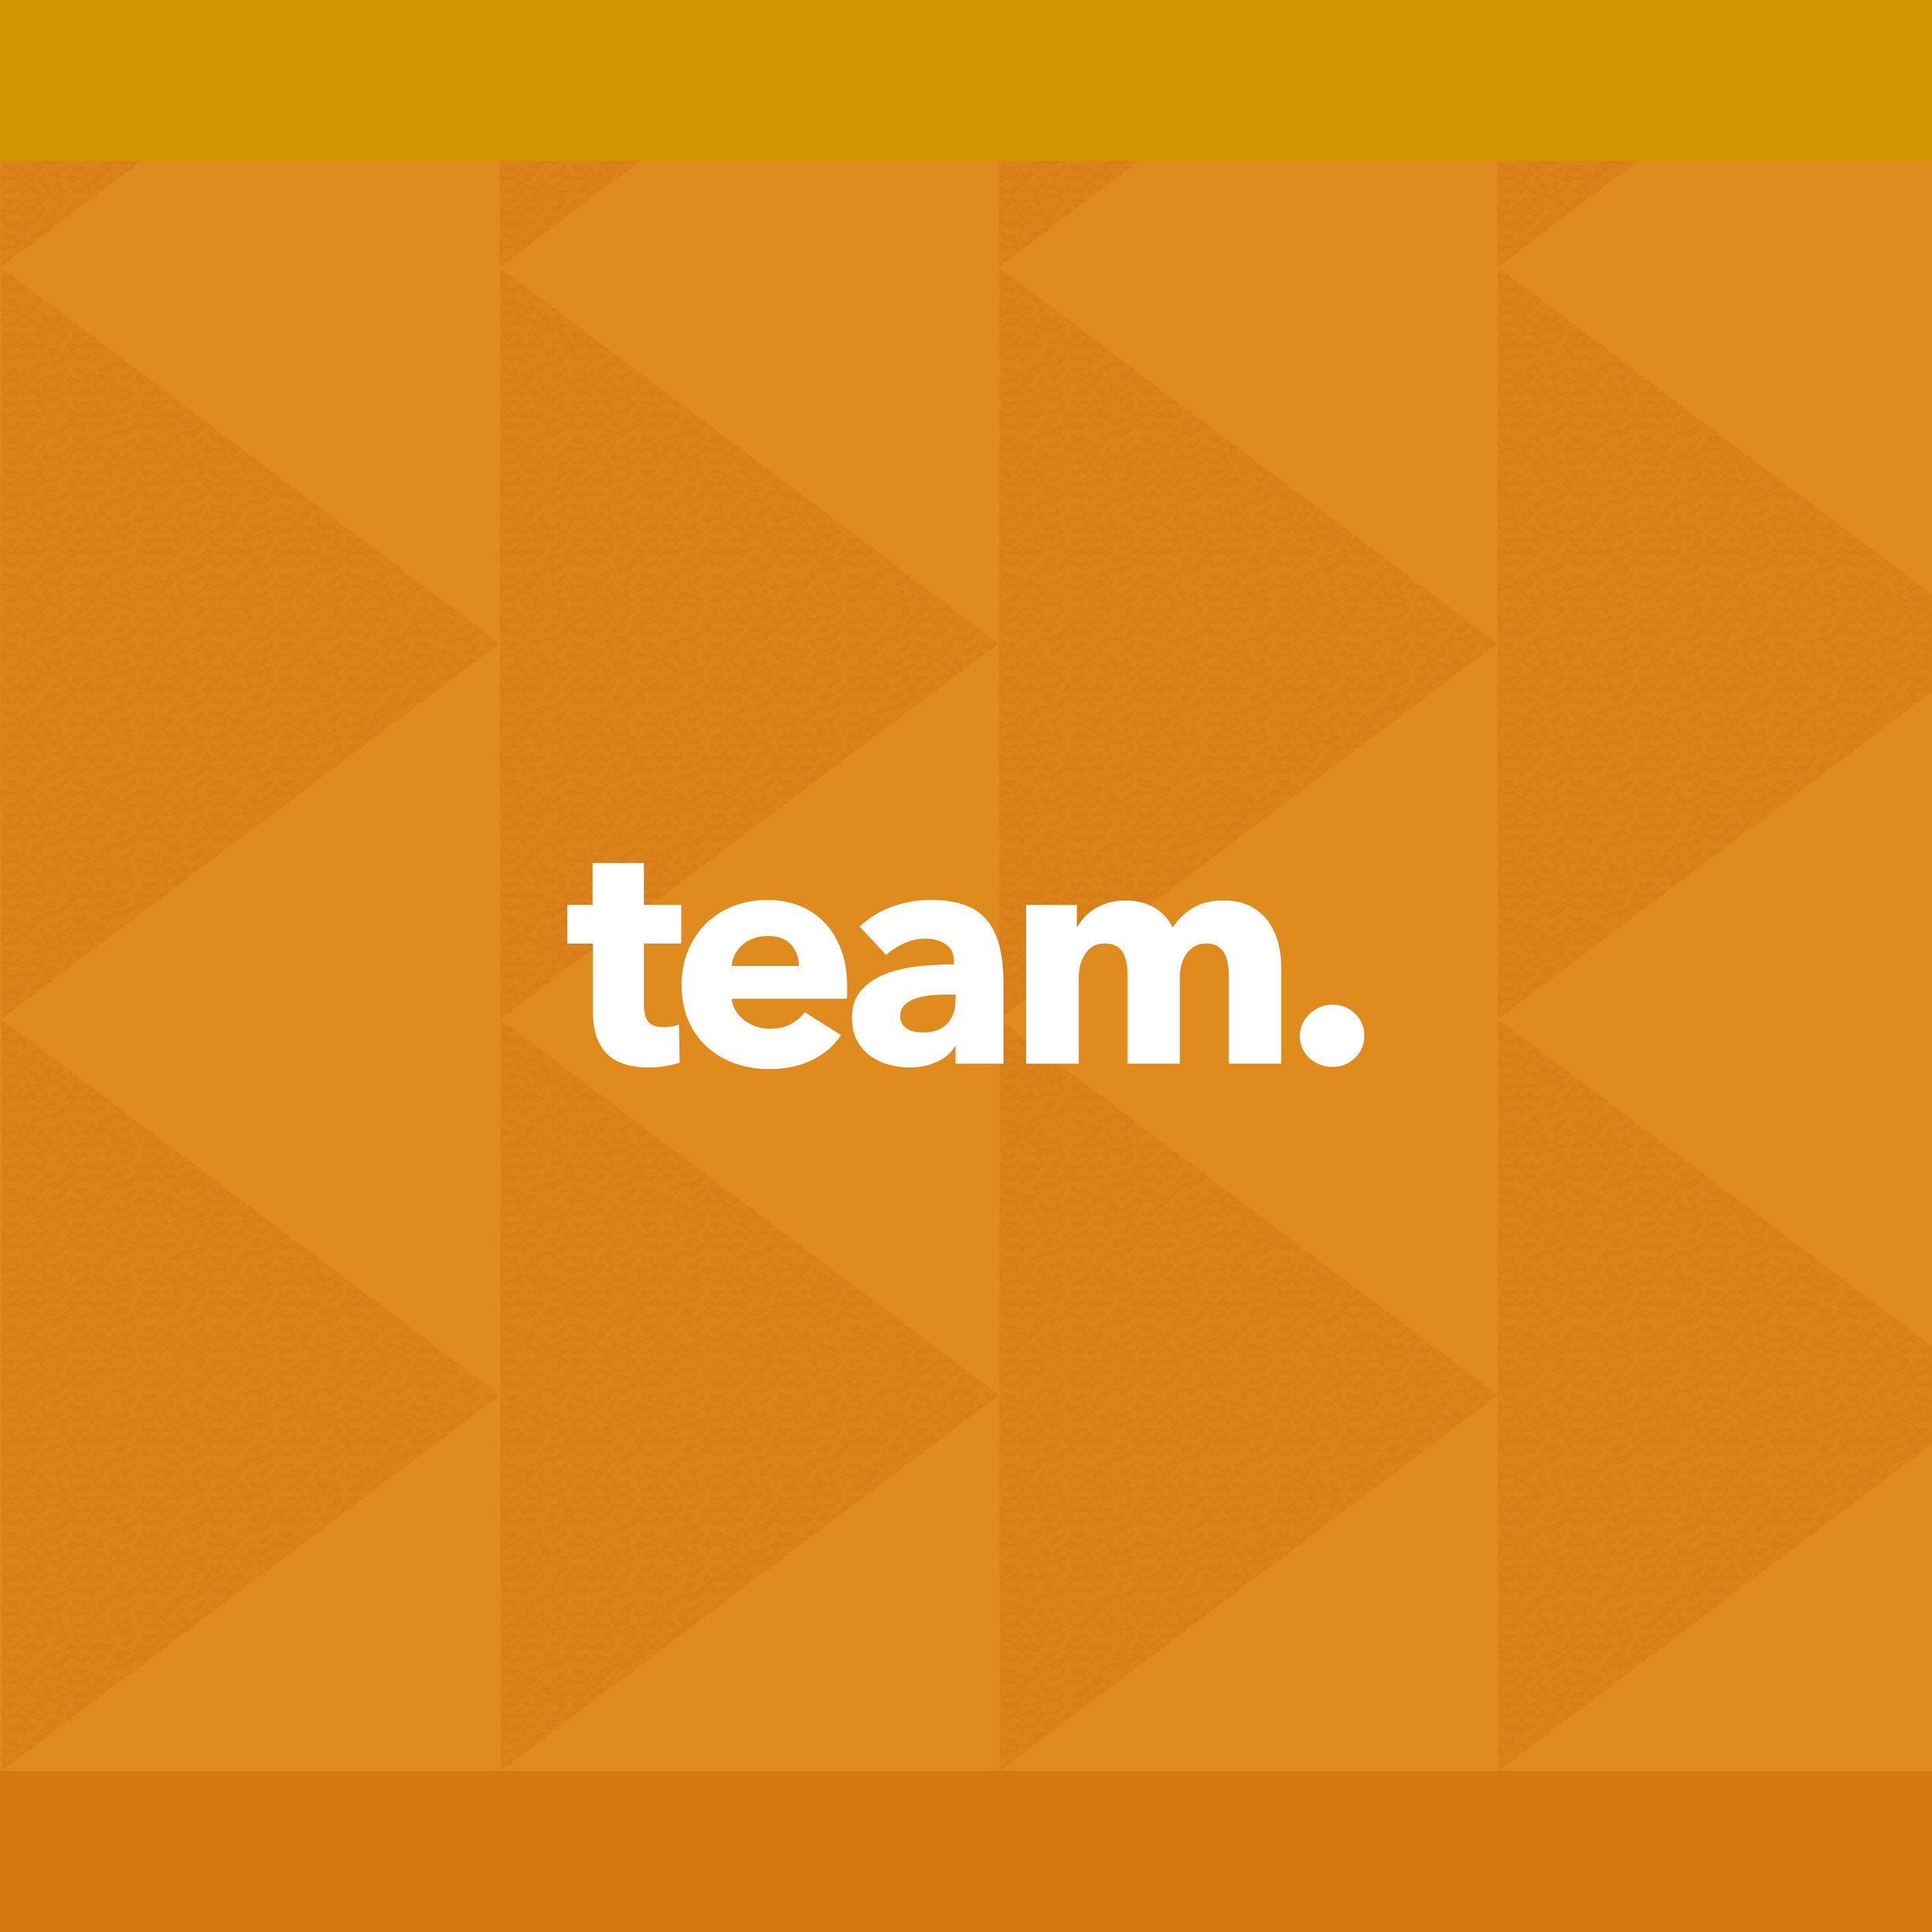 Team - We believe that the greatest step you can take in your journey with God is to serve in the local church. Meet our ministry leaders, join a team, and see what God does through you!